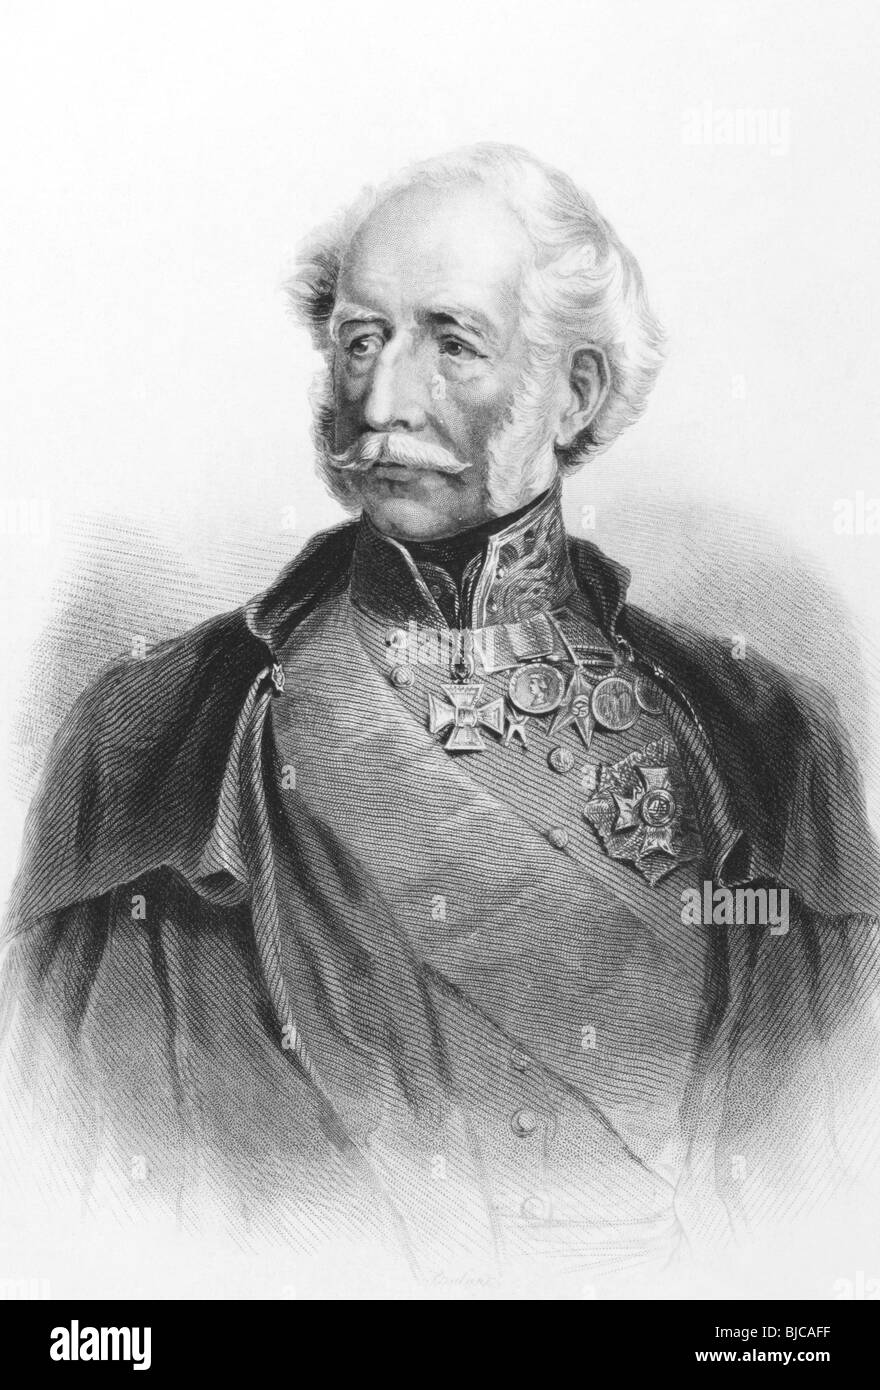 Hugh Gough, 1st Viscount Gough (1779-1869) on engraving from the 1800s. British Field Marshal. - Stock Image